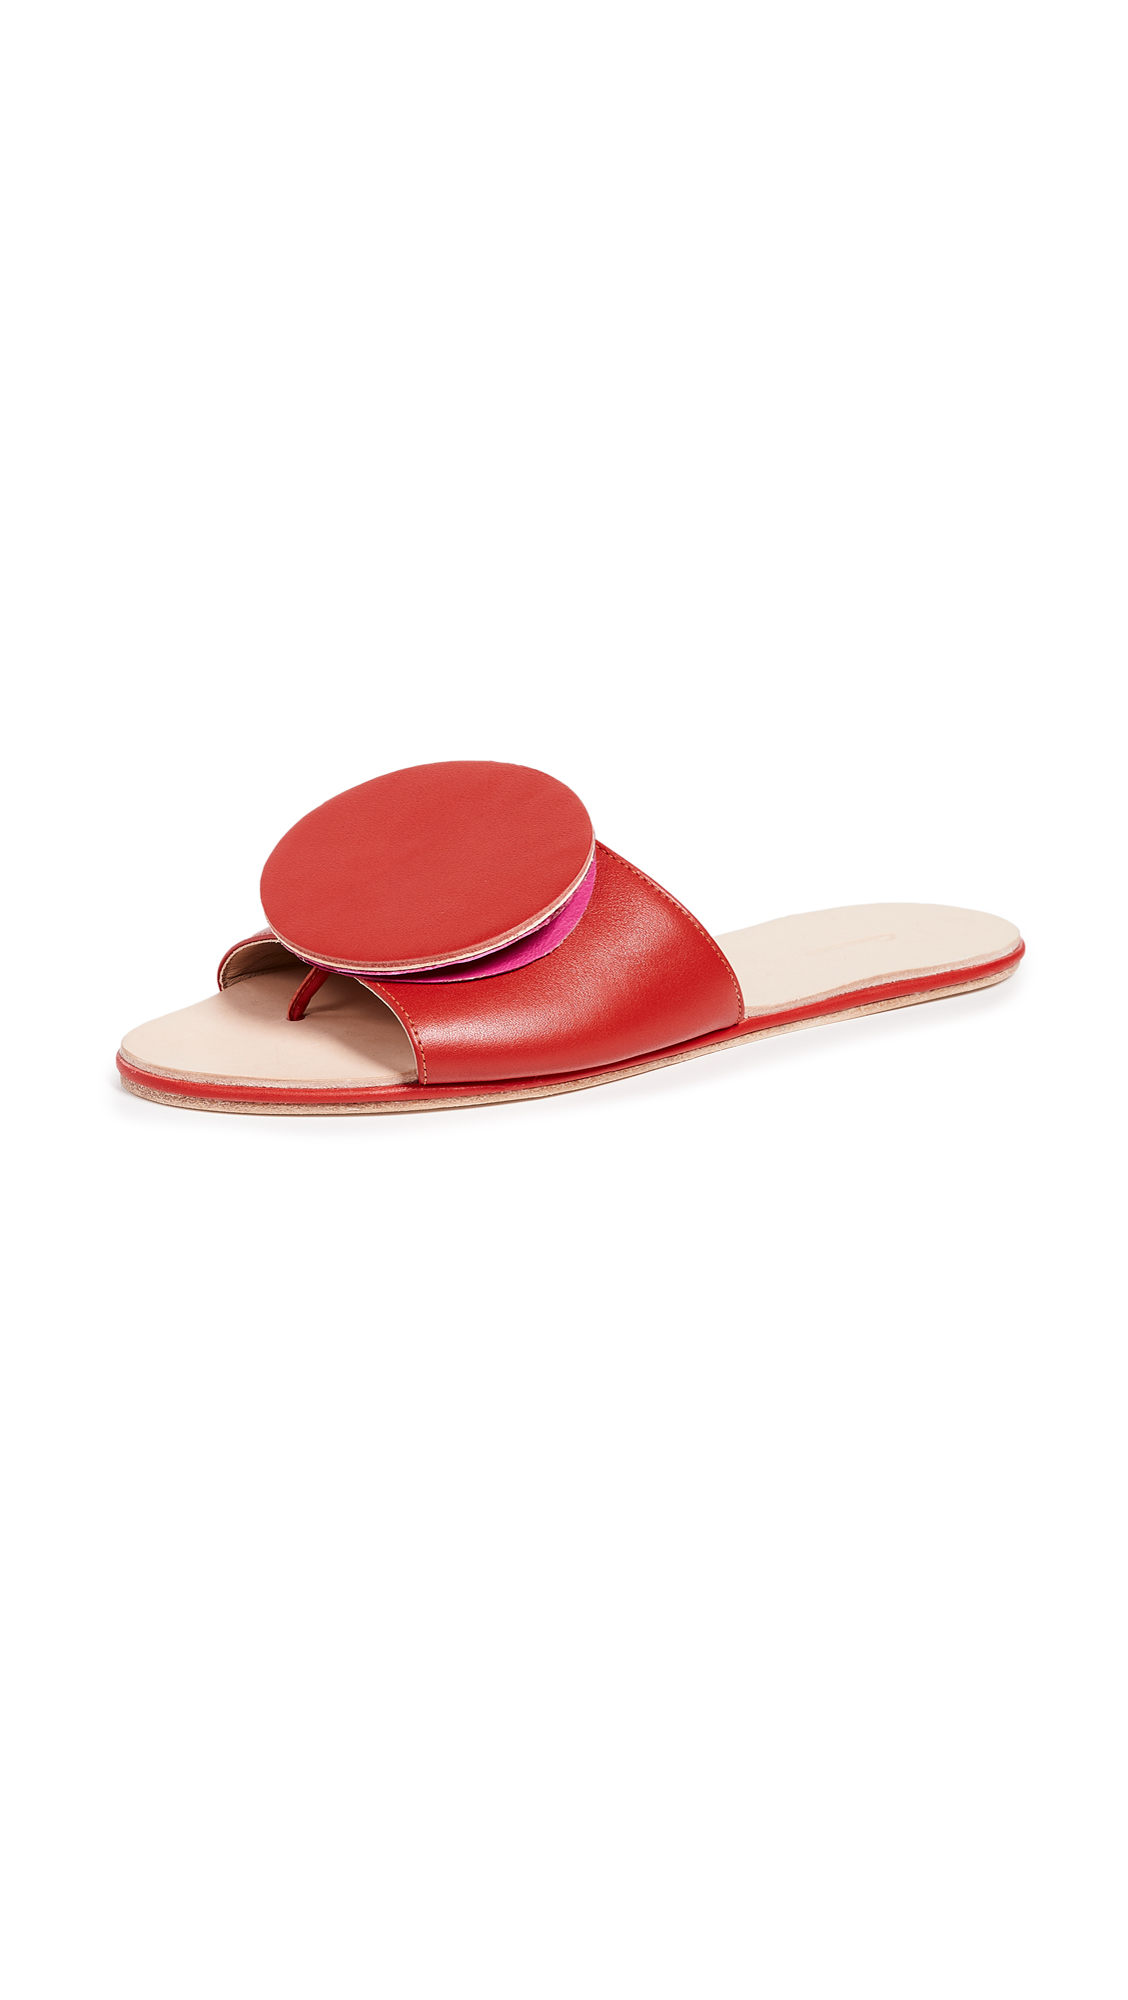 The Palatines Caeleste Origami Slides - Bright Red/Light Pink